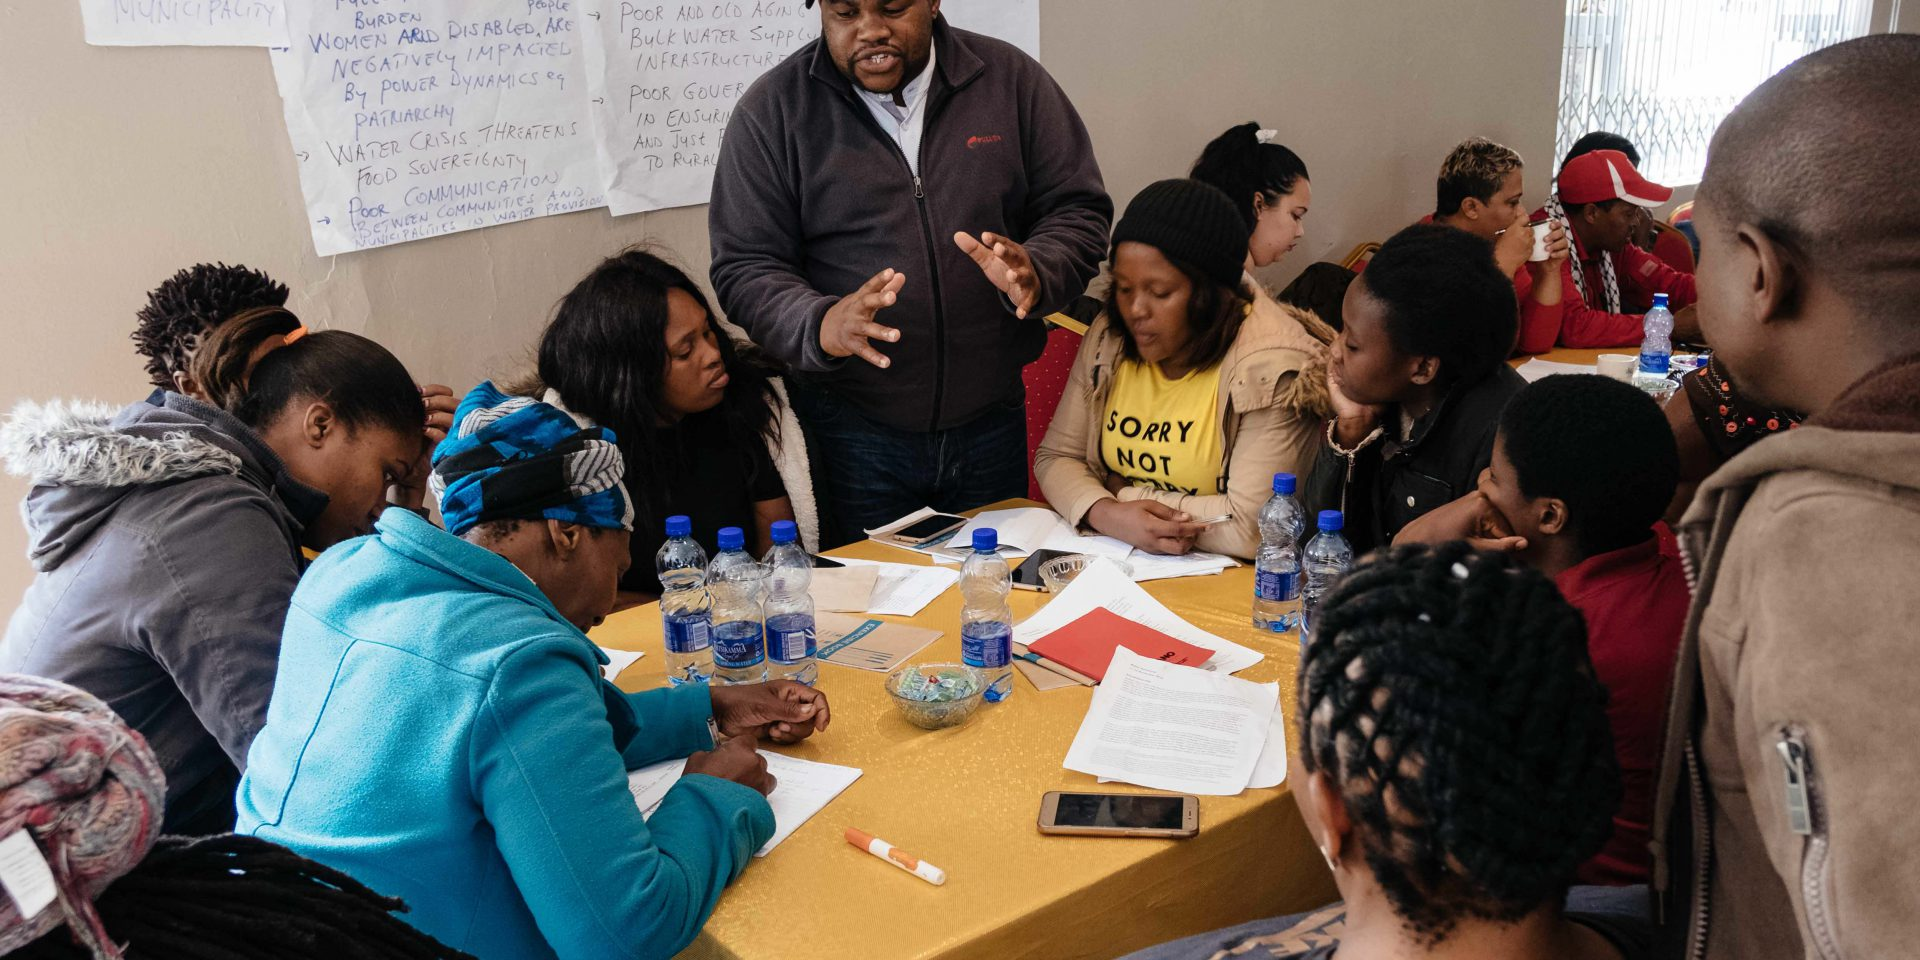 12 November 2019: Activists at the Water Crisis workshop held in East London to identify the region's water problems and discuss ways to deal with them.